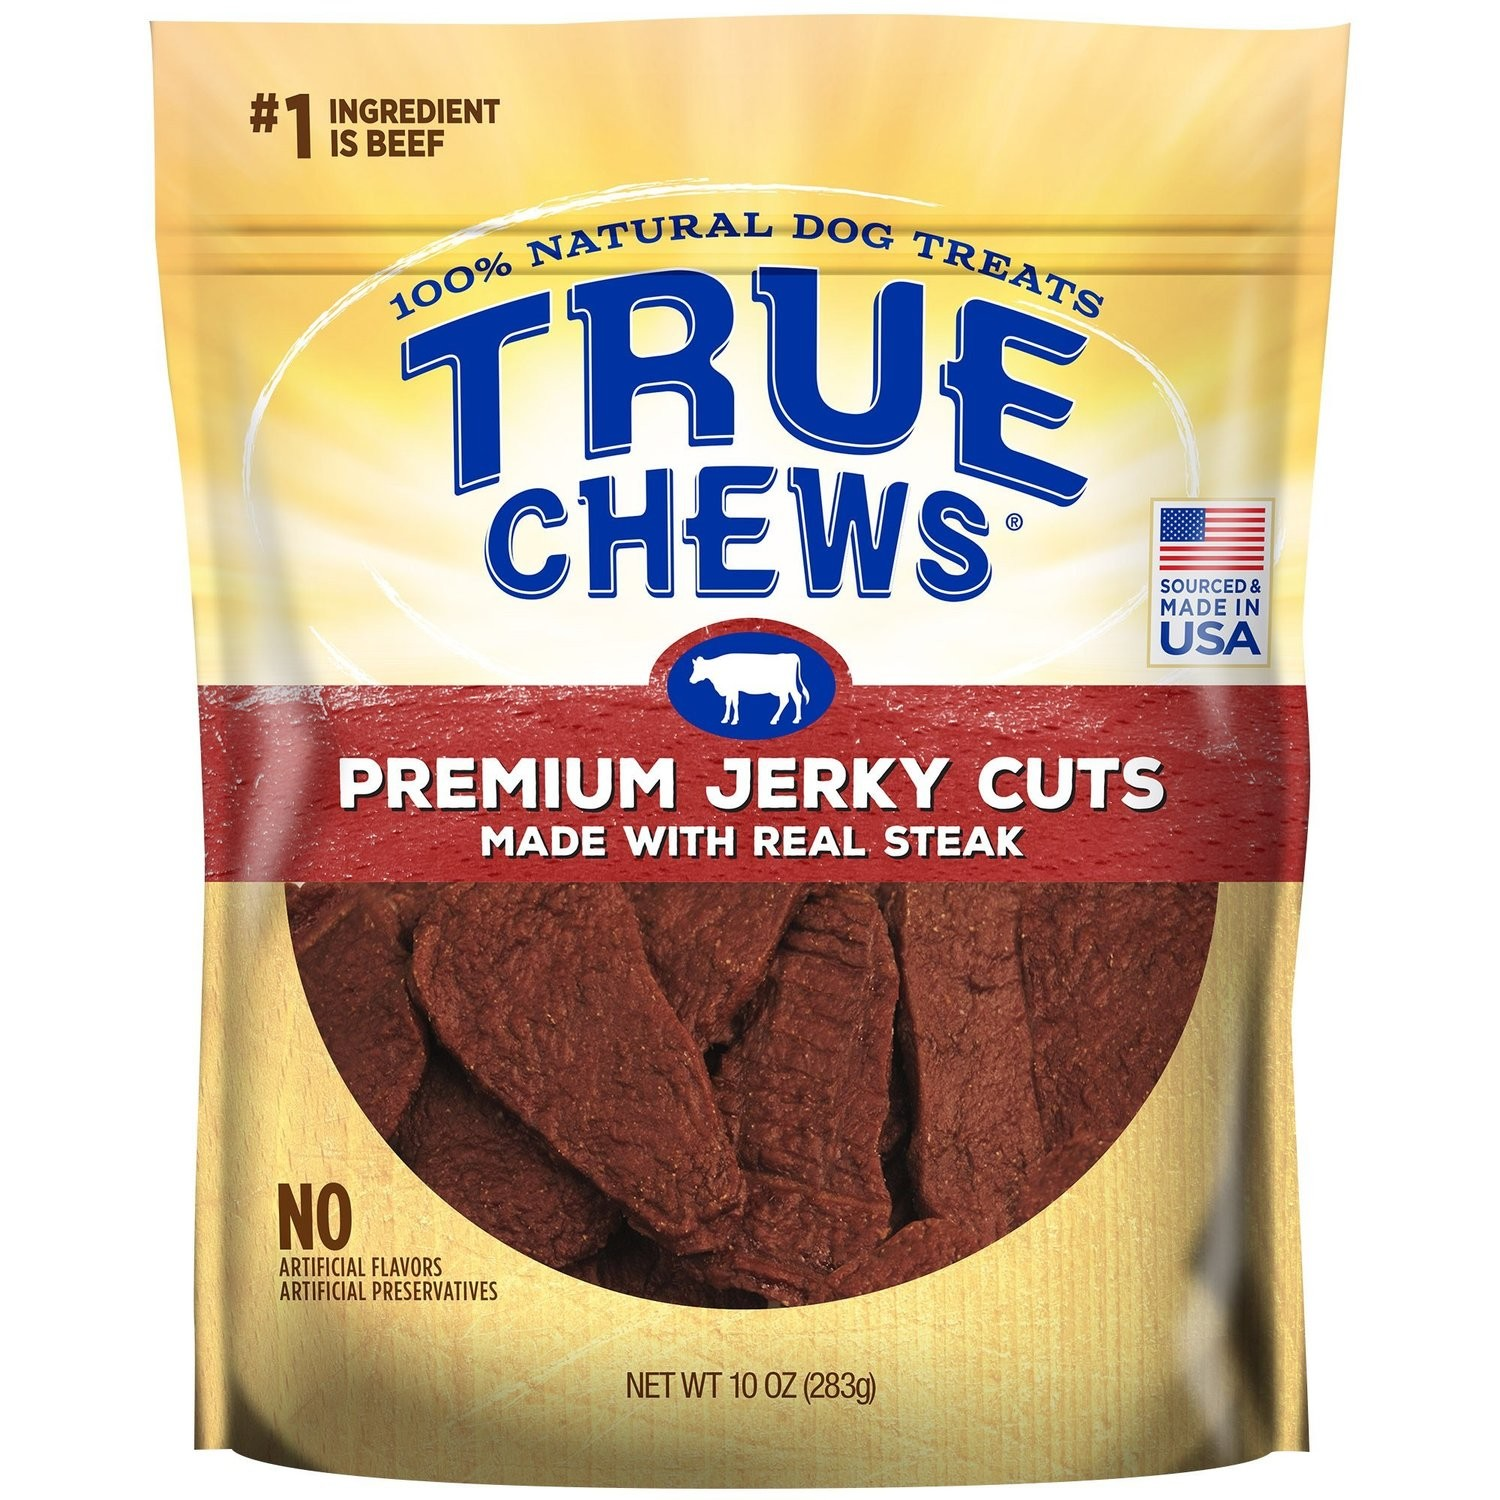 True Chews Premium Jerky Cuts Made with Real Steak Natural Dog Treats, 10 oz. (3/19) (T.A14/DT)